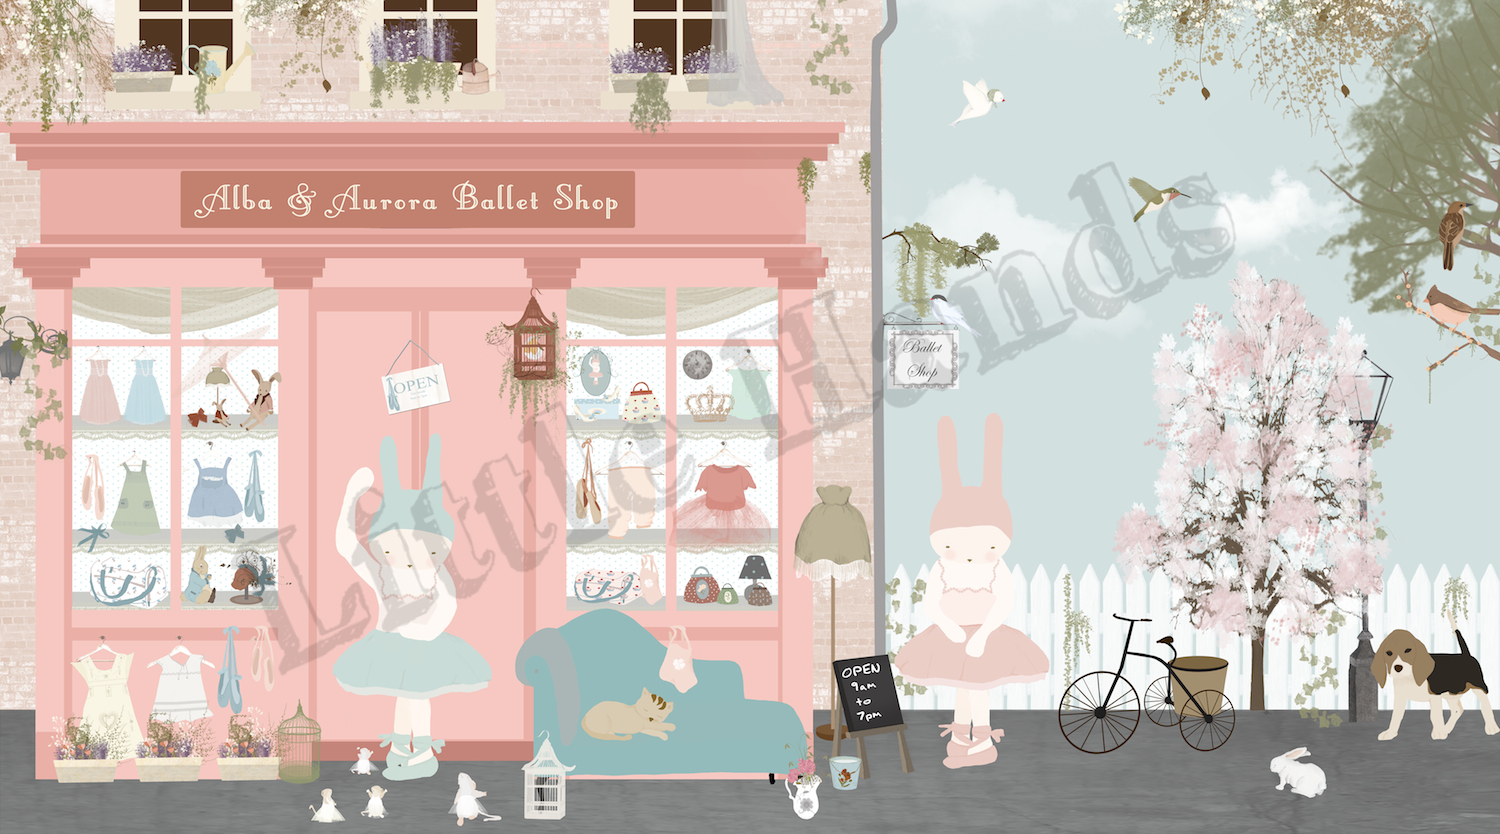 Decor Room Wallpaper Ballet Shop Mural Wallpaper